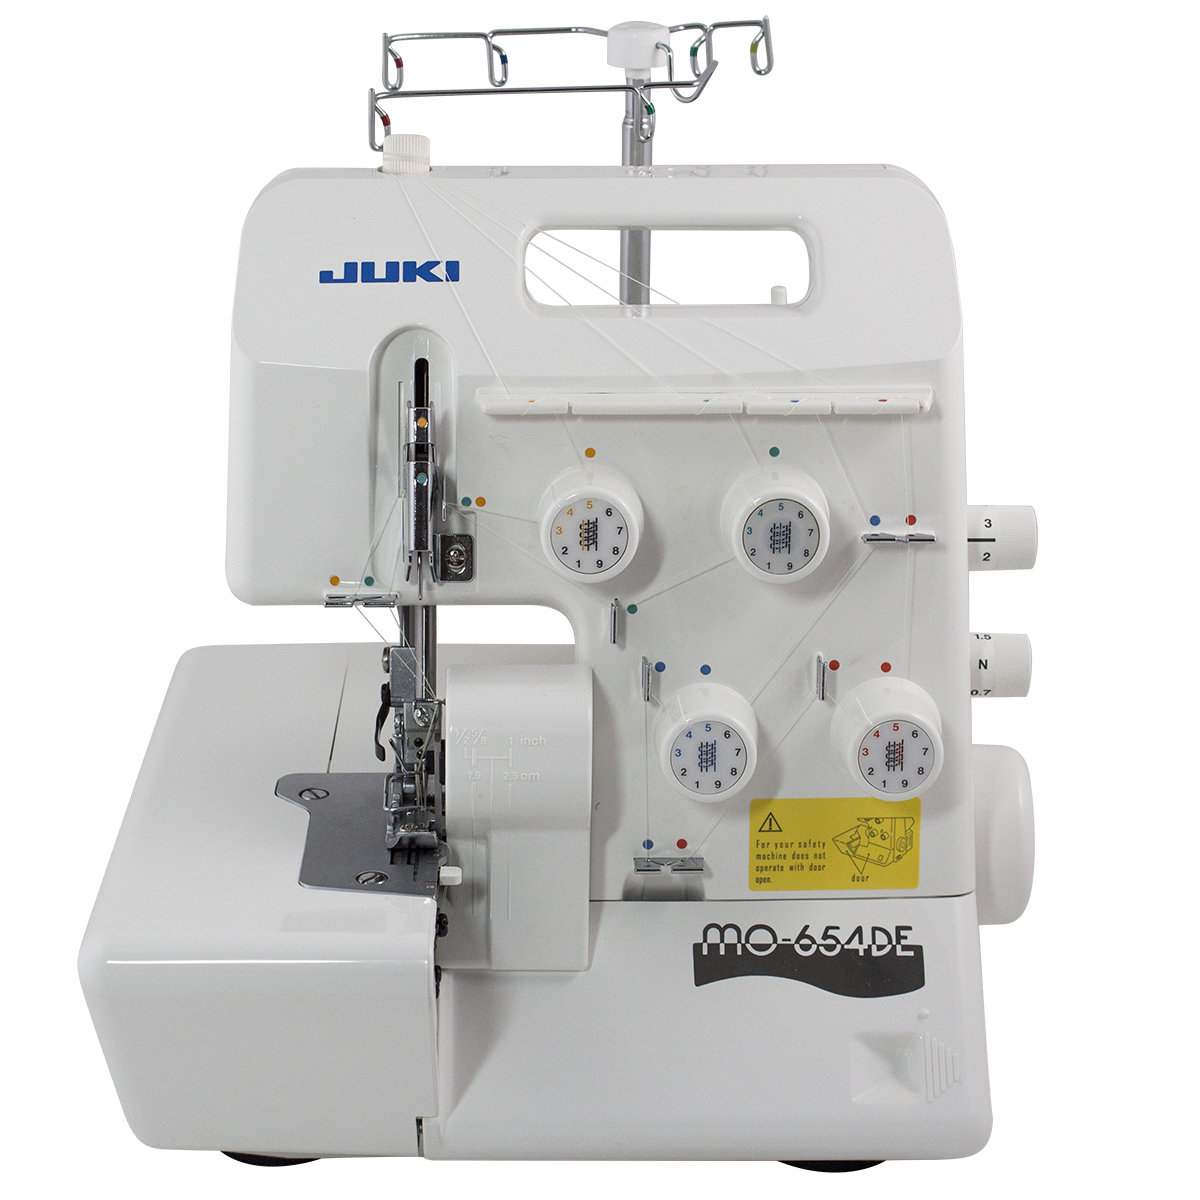 Juki MO-654DE Pearl Series Serger - Free Shipping Continental US